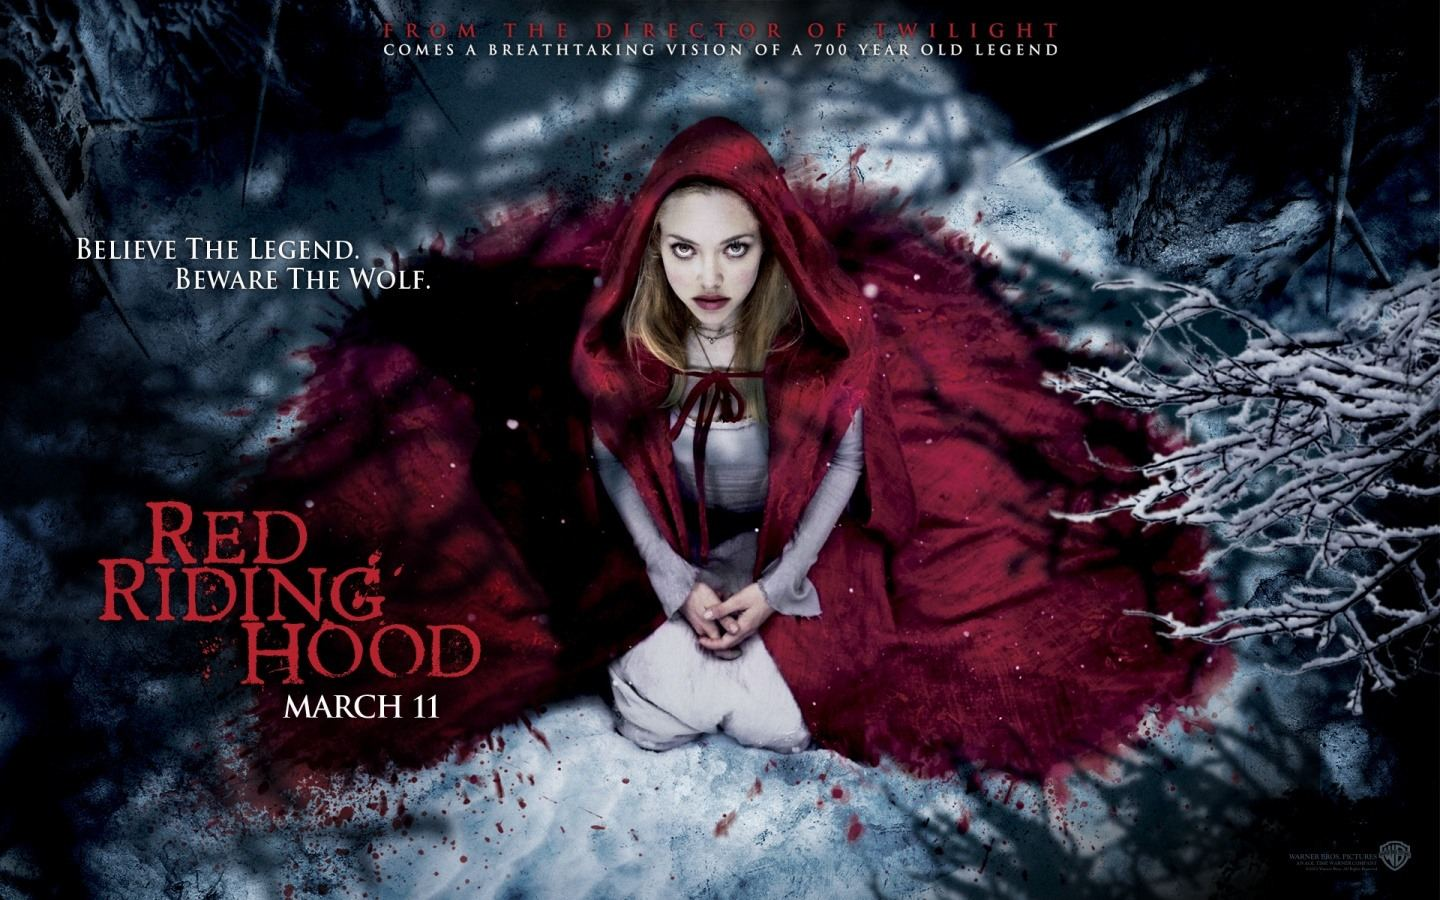 http://4.bp.blogspot.com/-igjwutKl7BQ/TX8_cUDVsTI/AAAAAAAAHxg/LUv64sIBSCU/s1600/Red-Riding-Hood-Movie_trailer%2B2011%2Bmarch_www.lylybye.blogspot.com.jpg